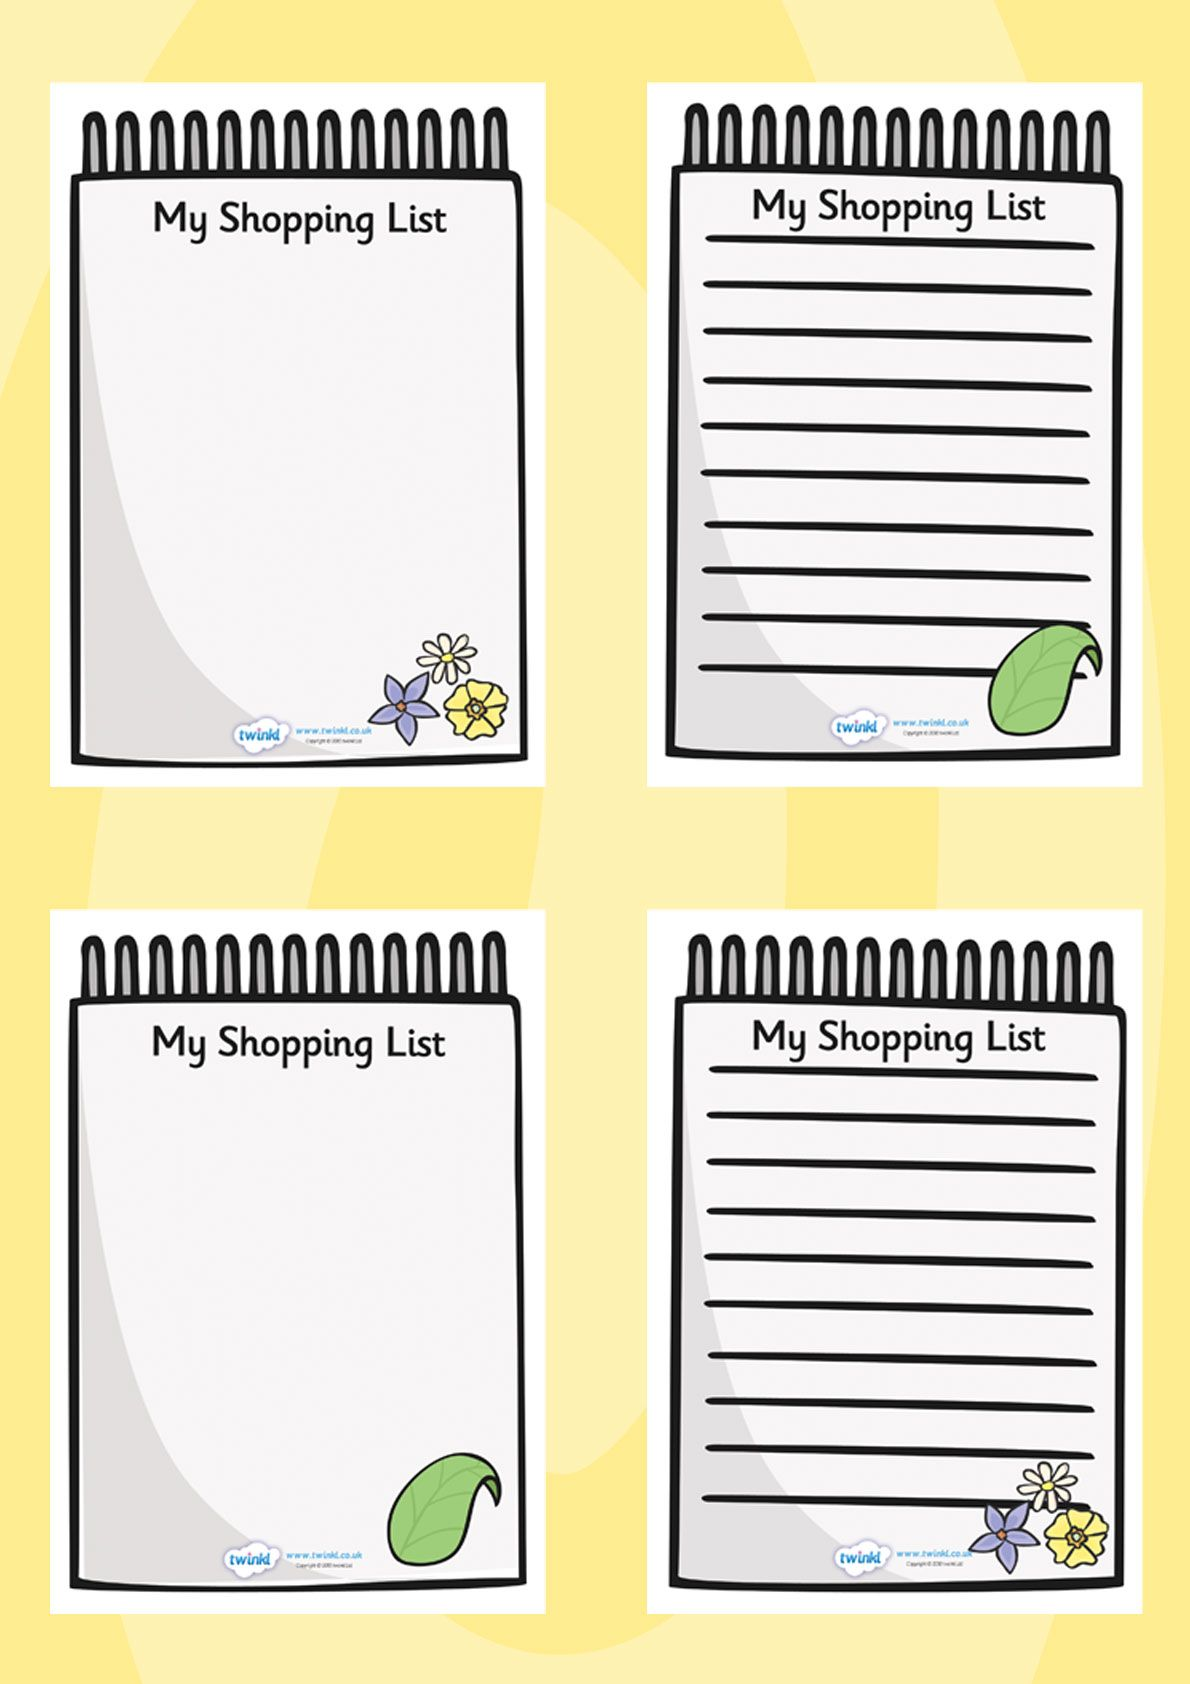 Twinkl Resources Gt Gt Role Play Shopping Lists Gt Gt Printable Resources For Primary Eyfs Ks1 And